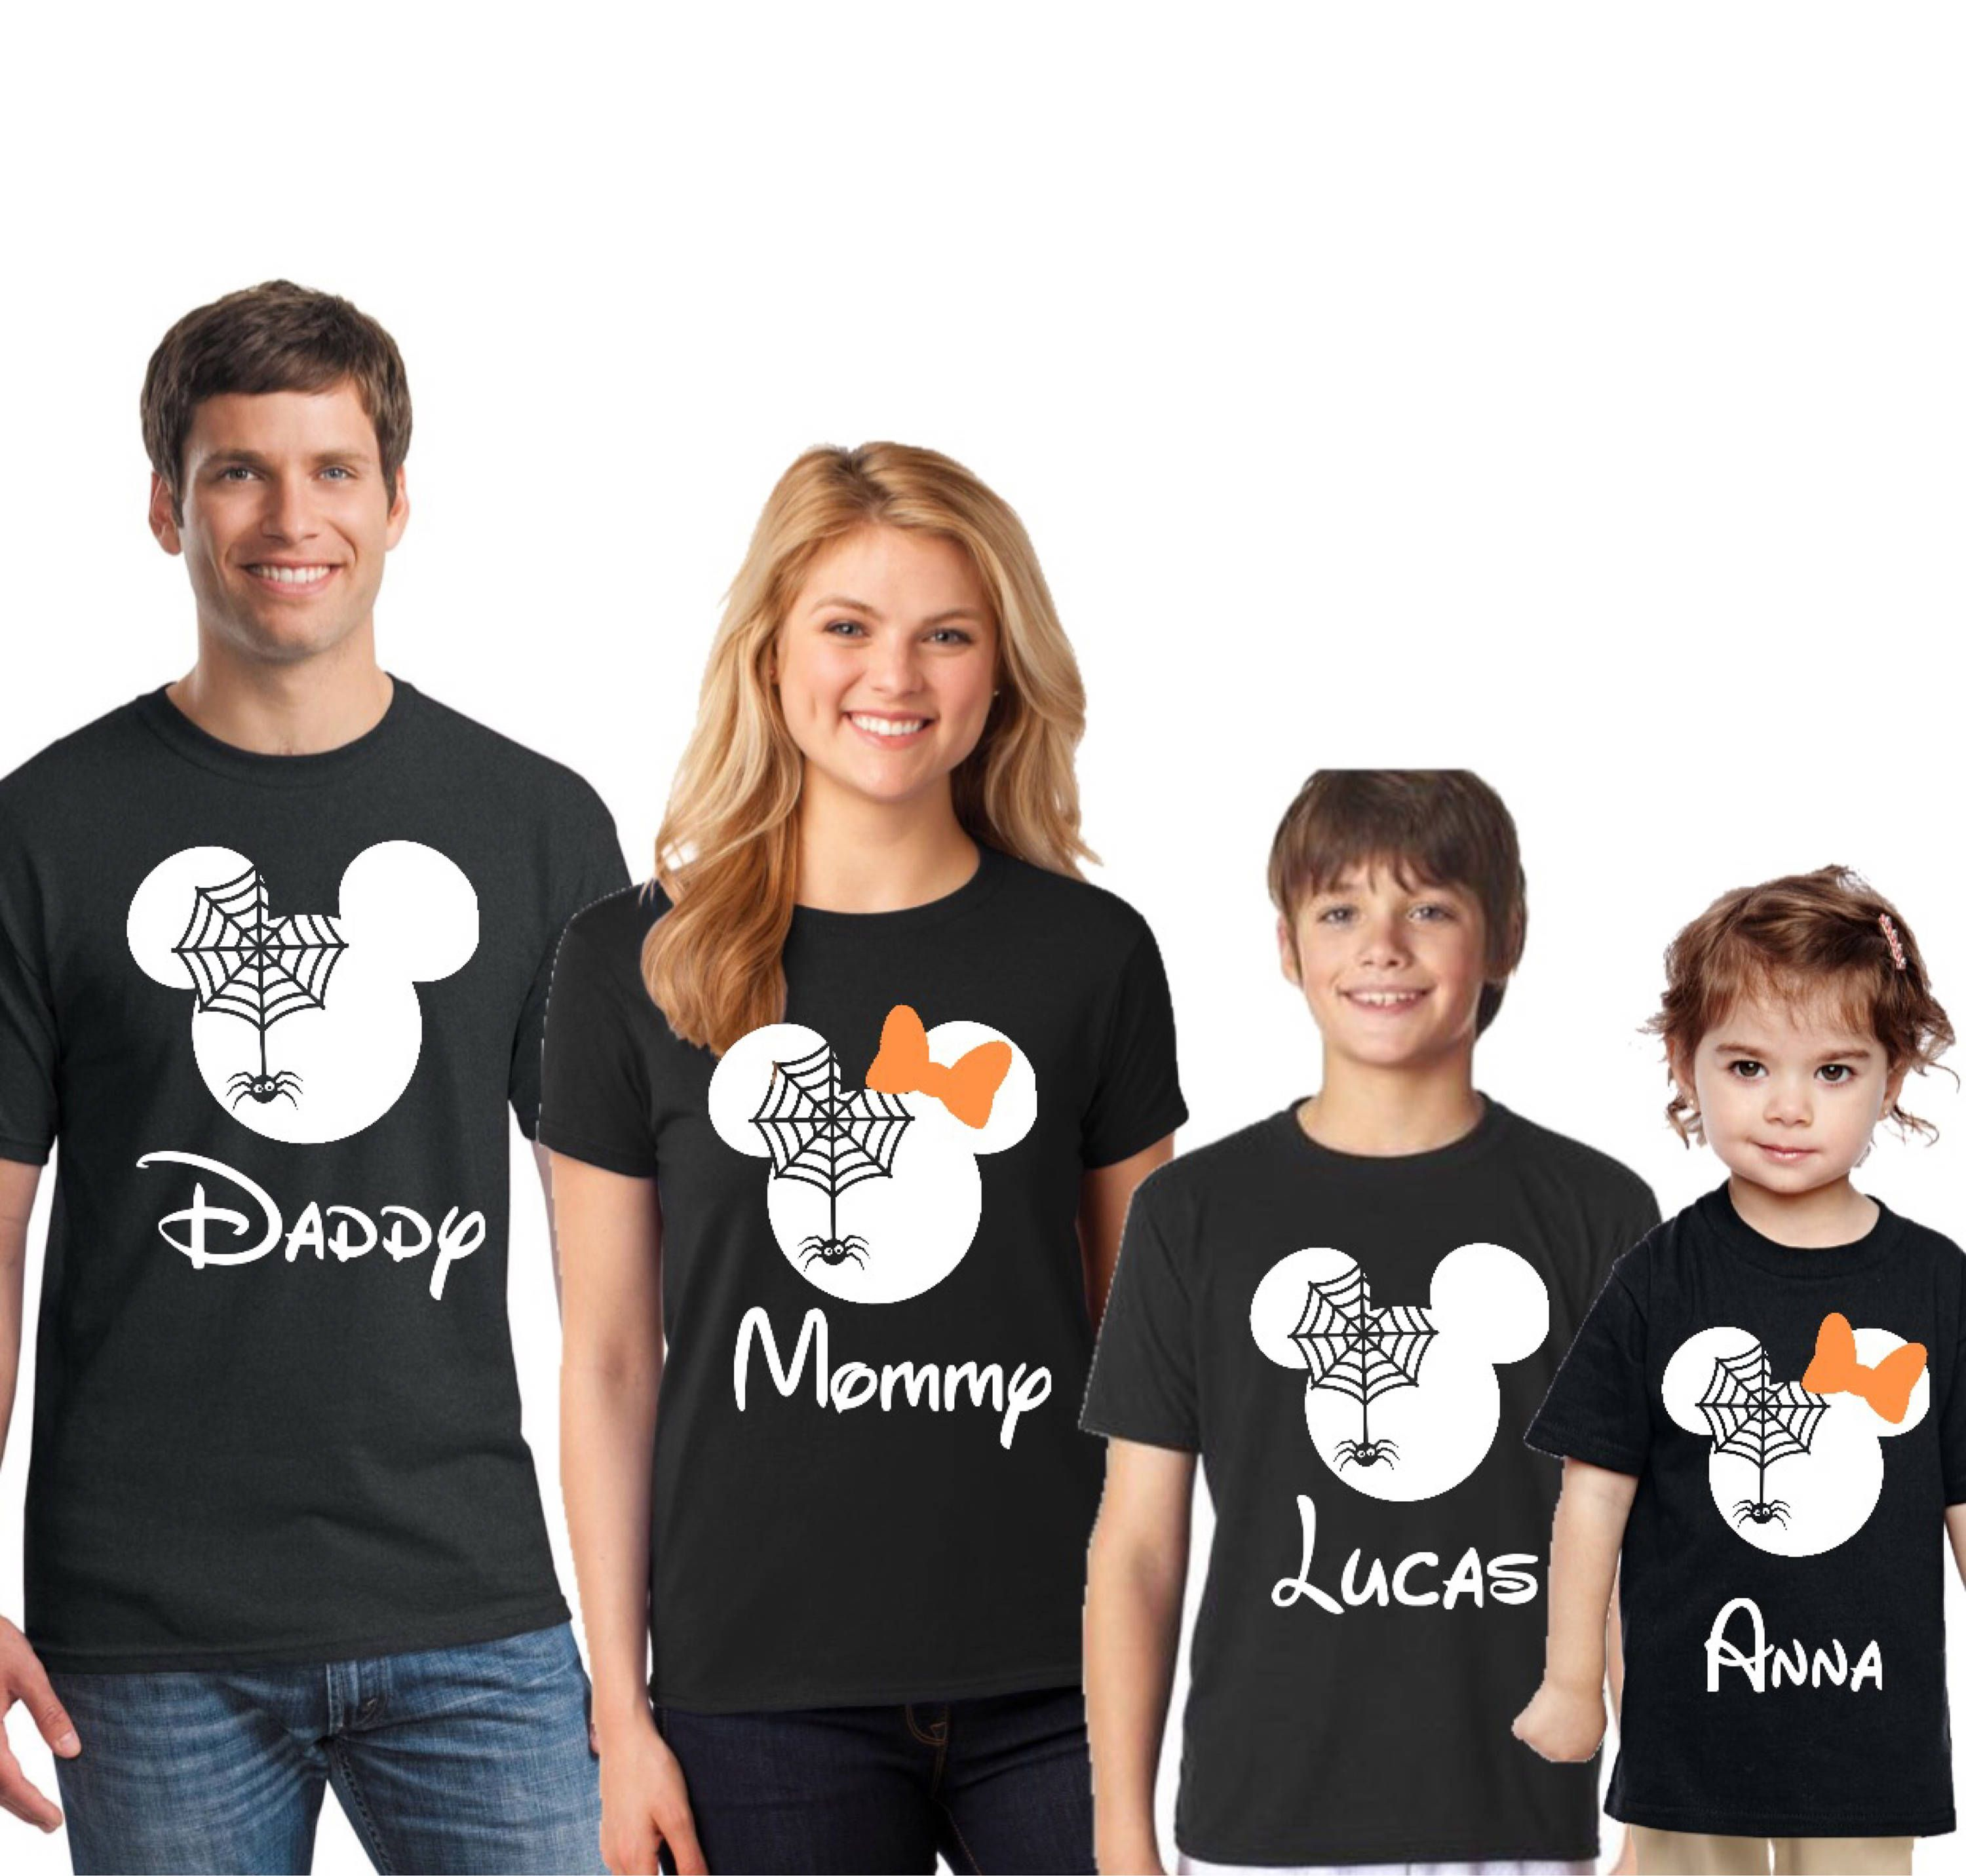 Disney Halloween Shirt Ideas.Disney Spider Shirts Disney Halloween Shirts Disney Inspired